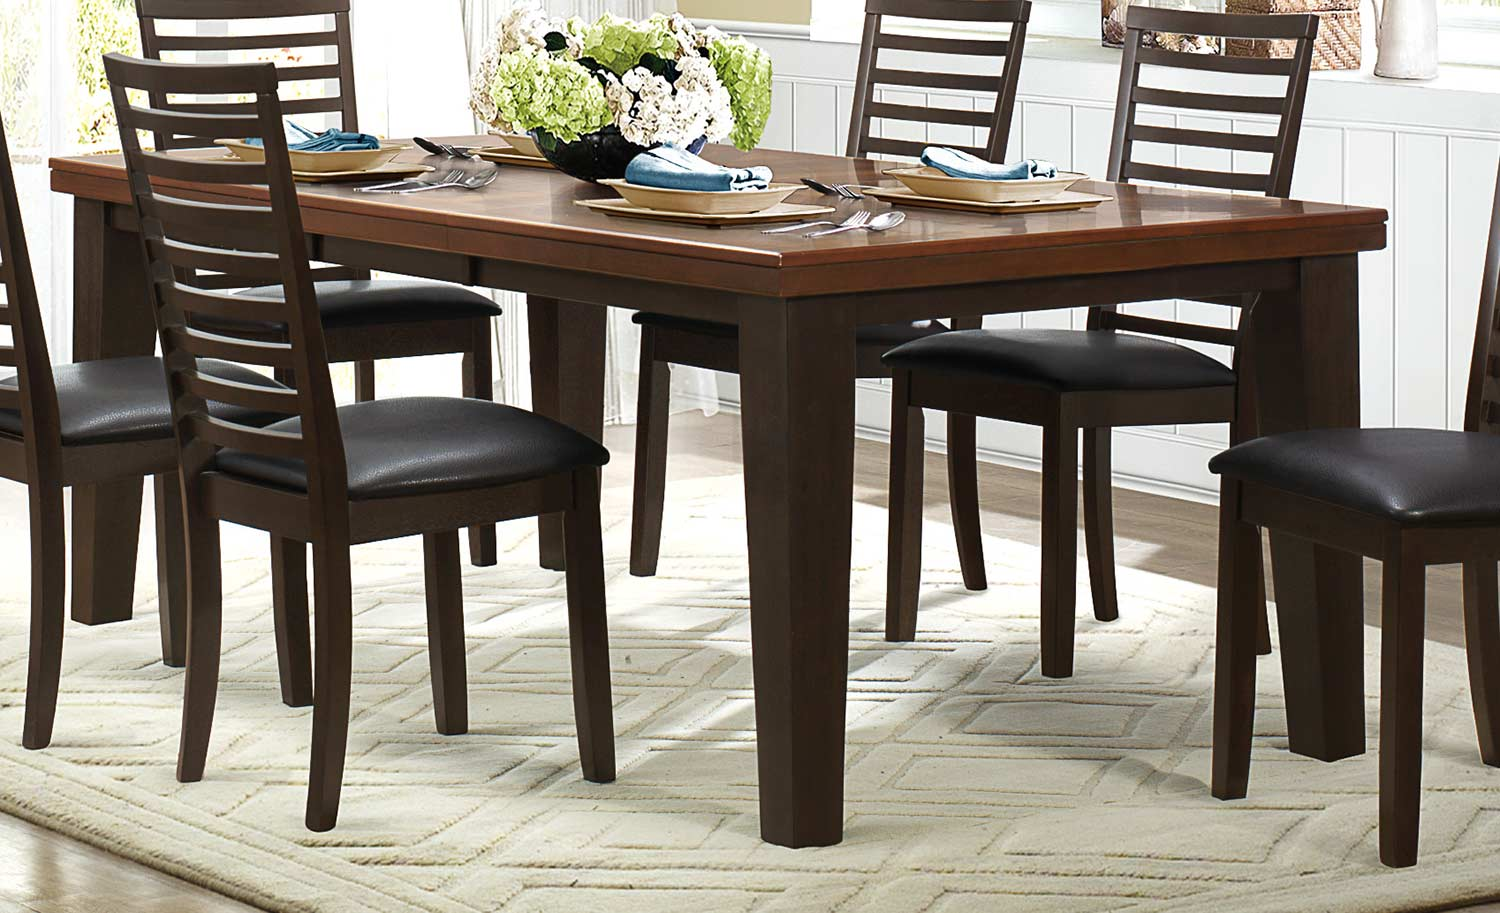 Homelegance Walsh Dining Table - Two-Tone